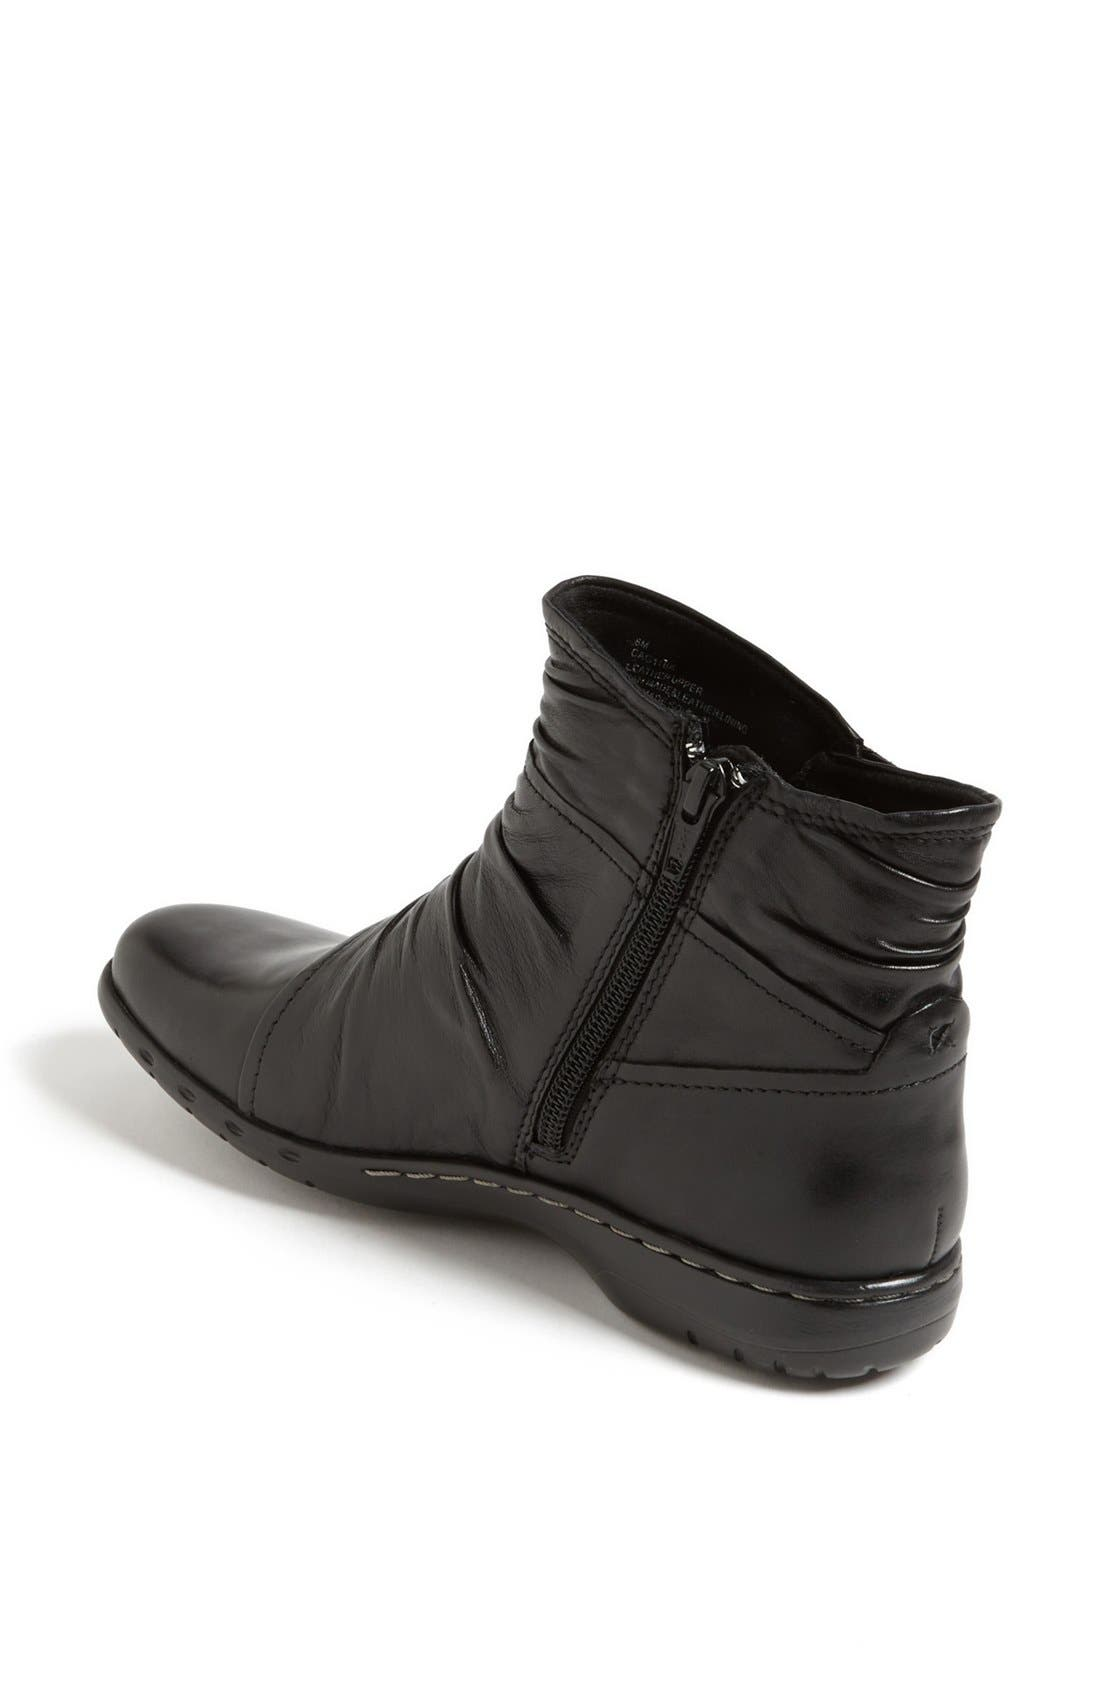 'Pandora' Boot,                             Alternate thumbnail 2, color,                             BLACK